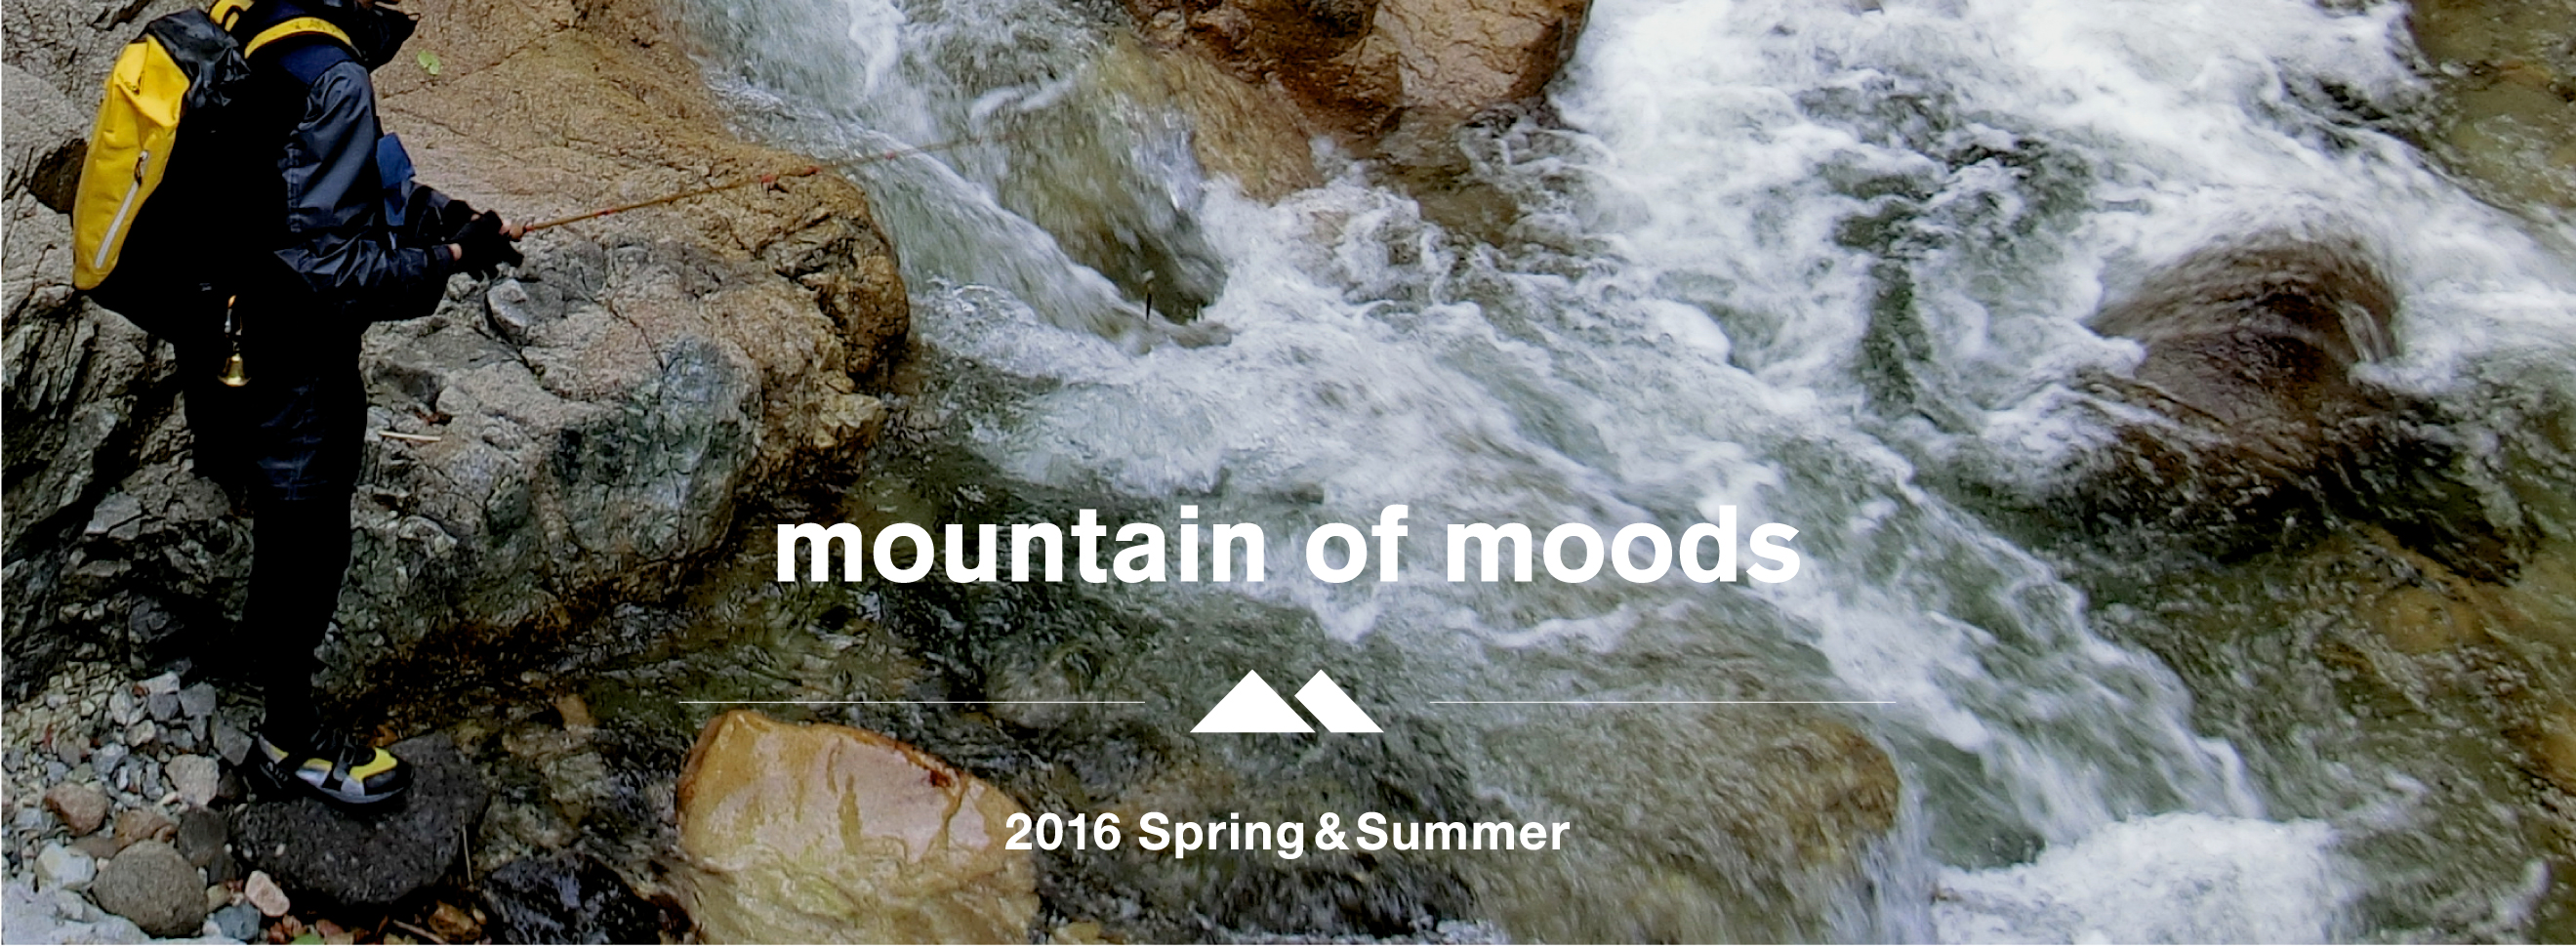 mountain of moods